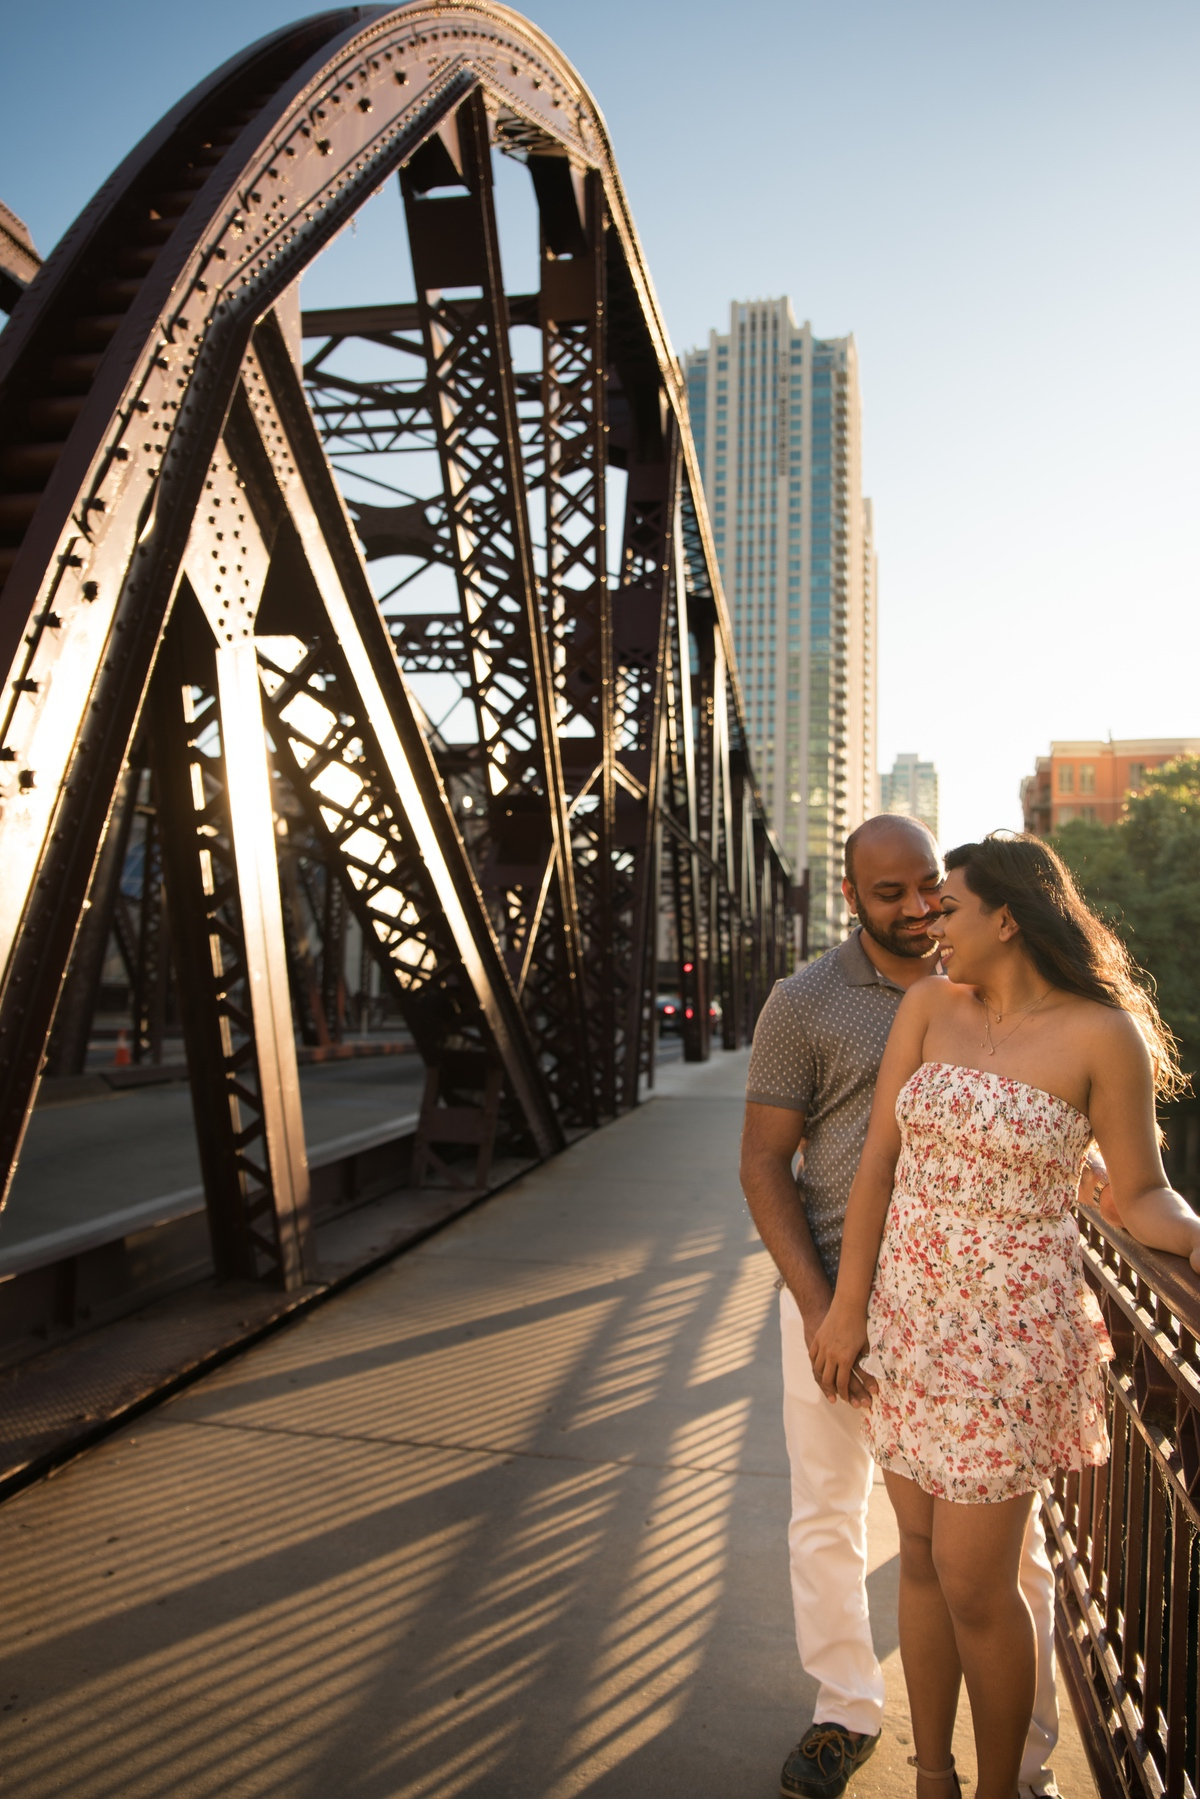 Le Cape Weddings - Engagement Session in Chicago - Brinjal-16.jpg